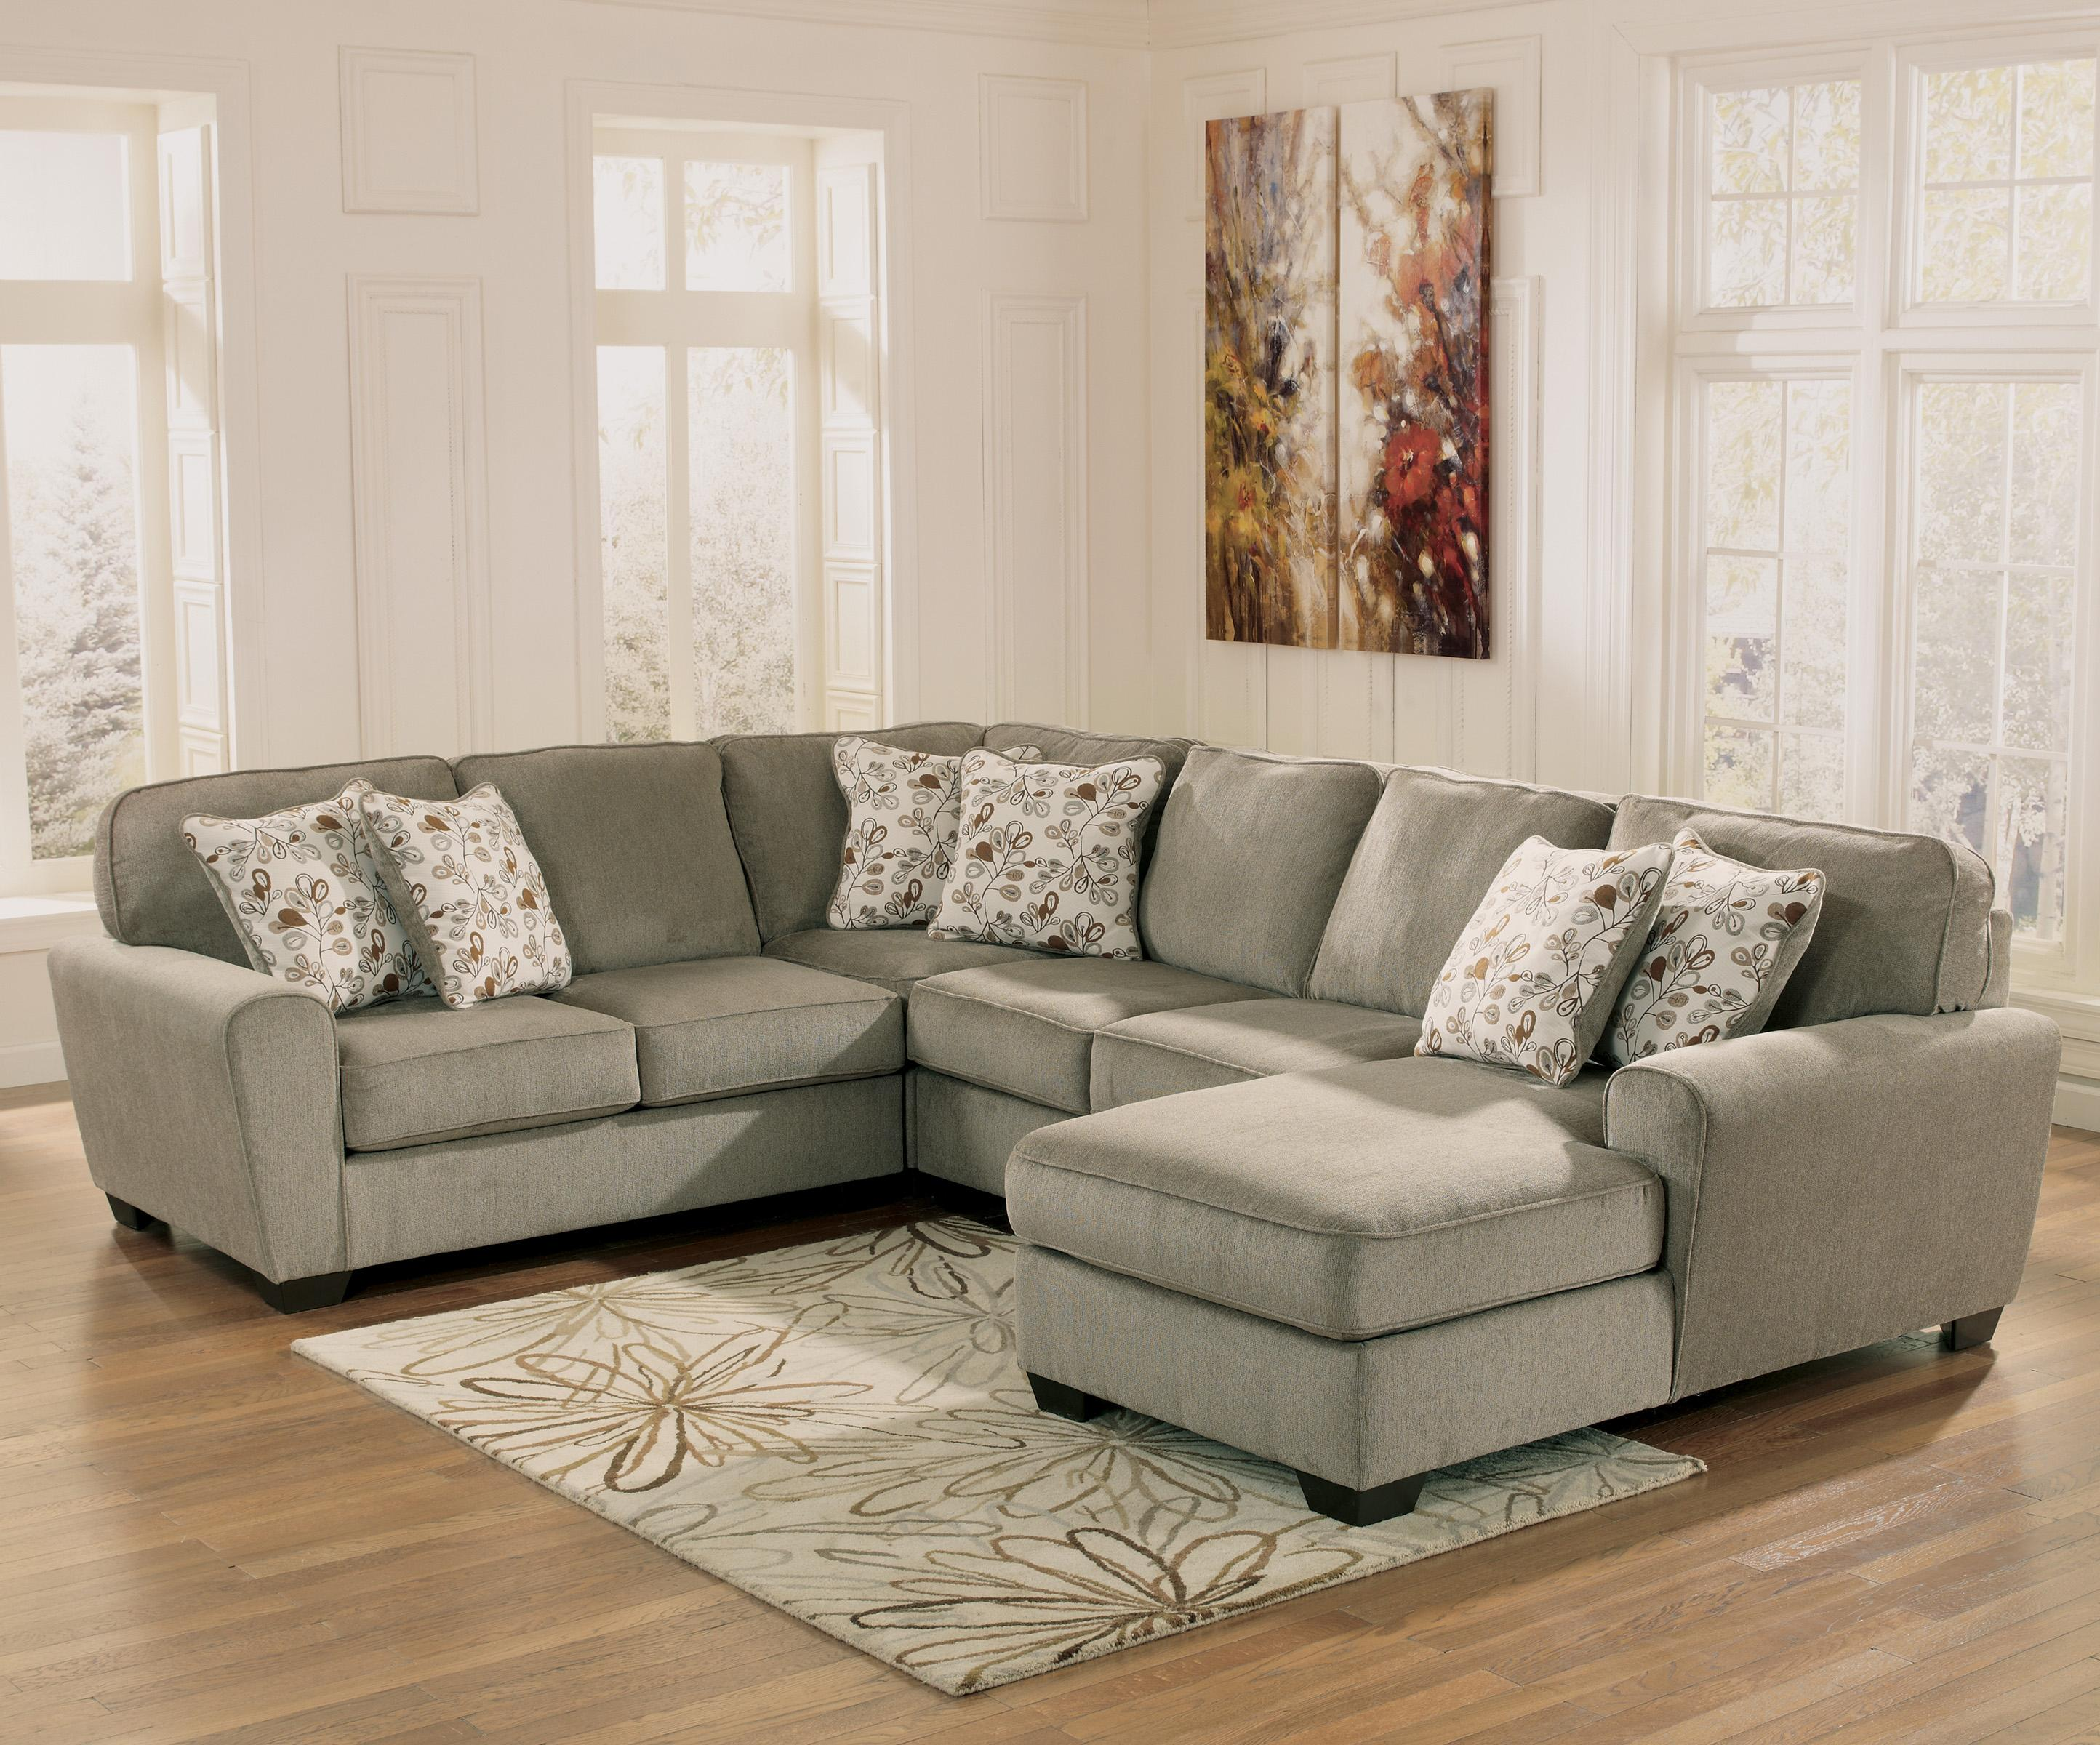 ashley furniture patola park patina 4 piece small sectional with right chaise olinde 39 s. Black Bedroom Furniture Sets. Home Design Ideas